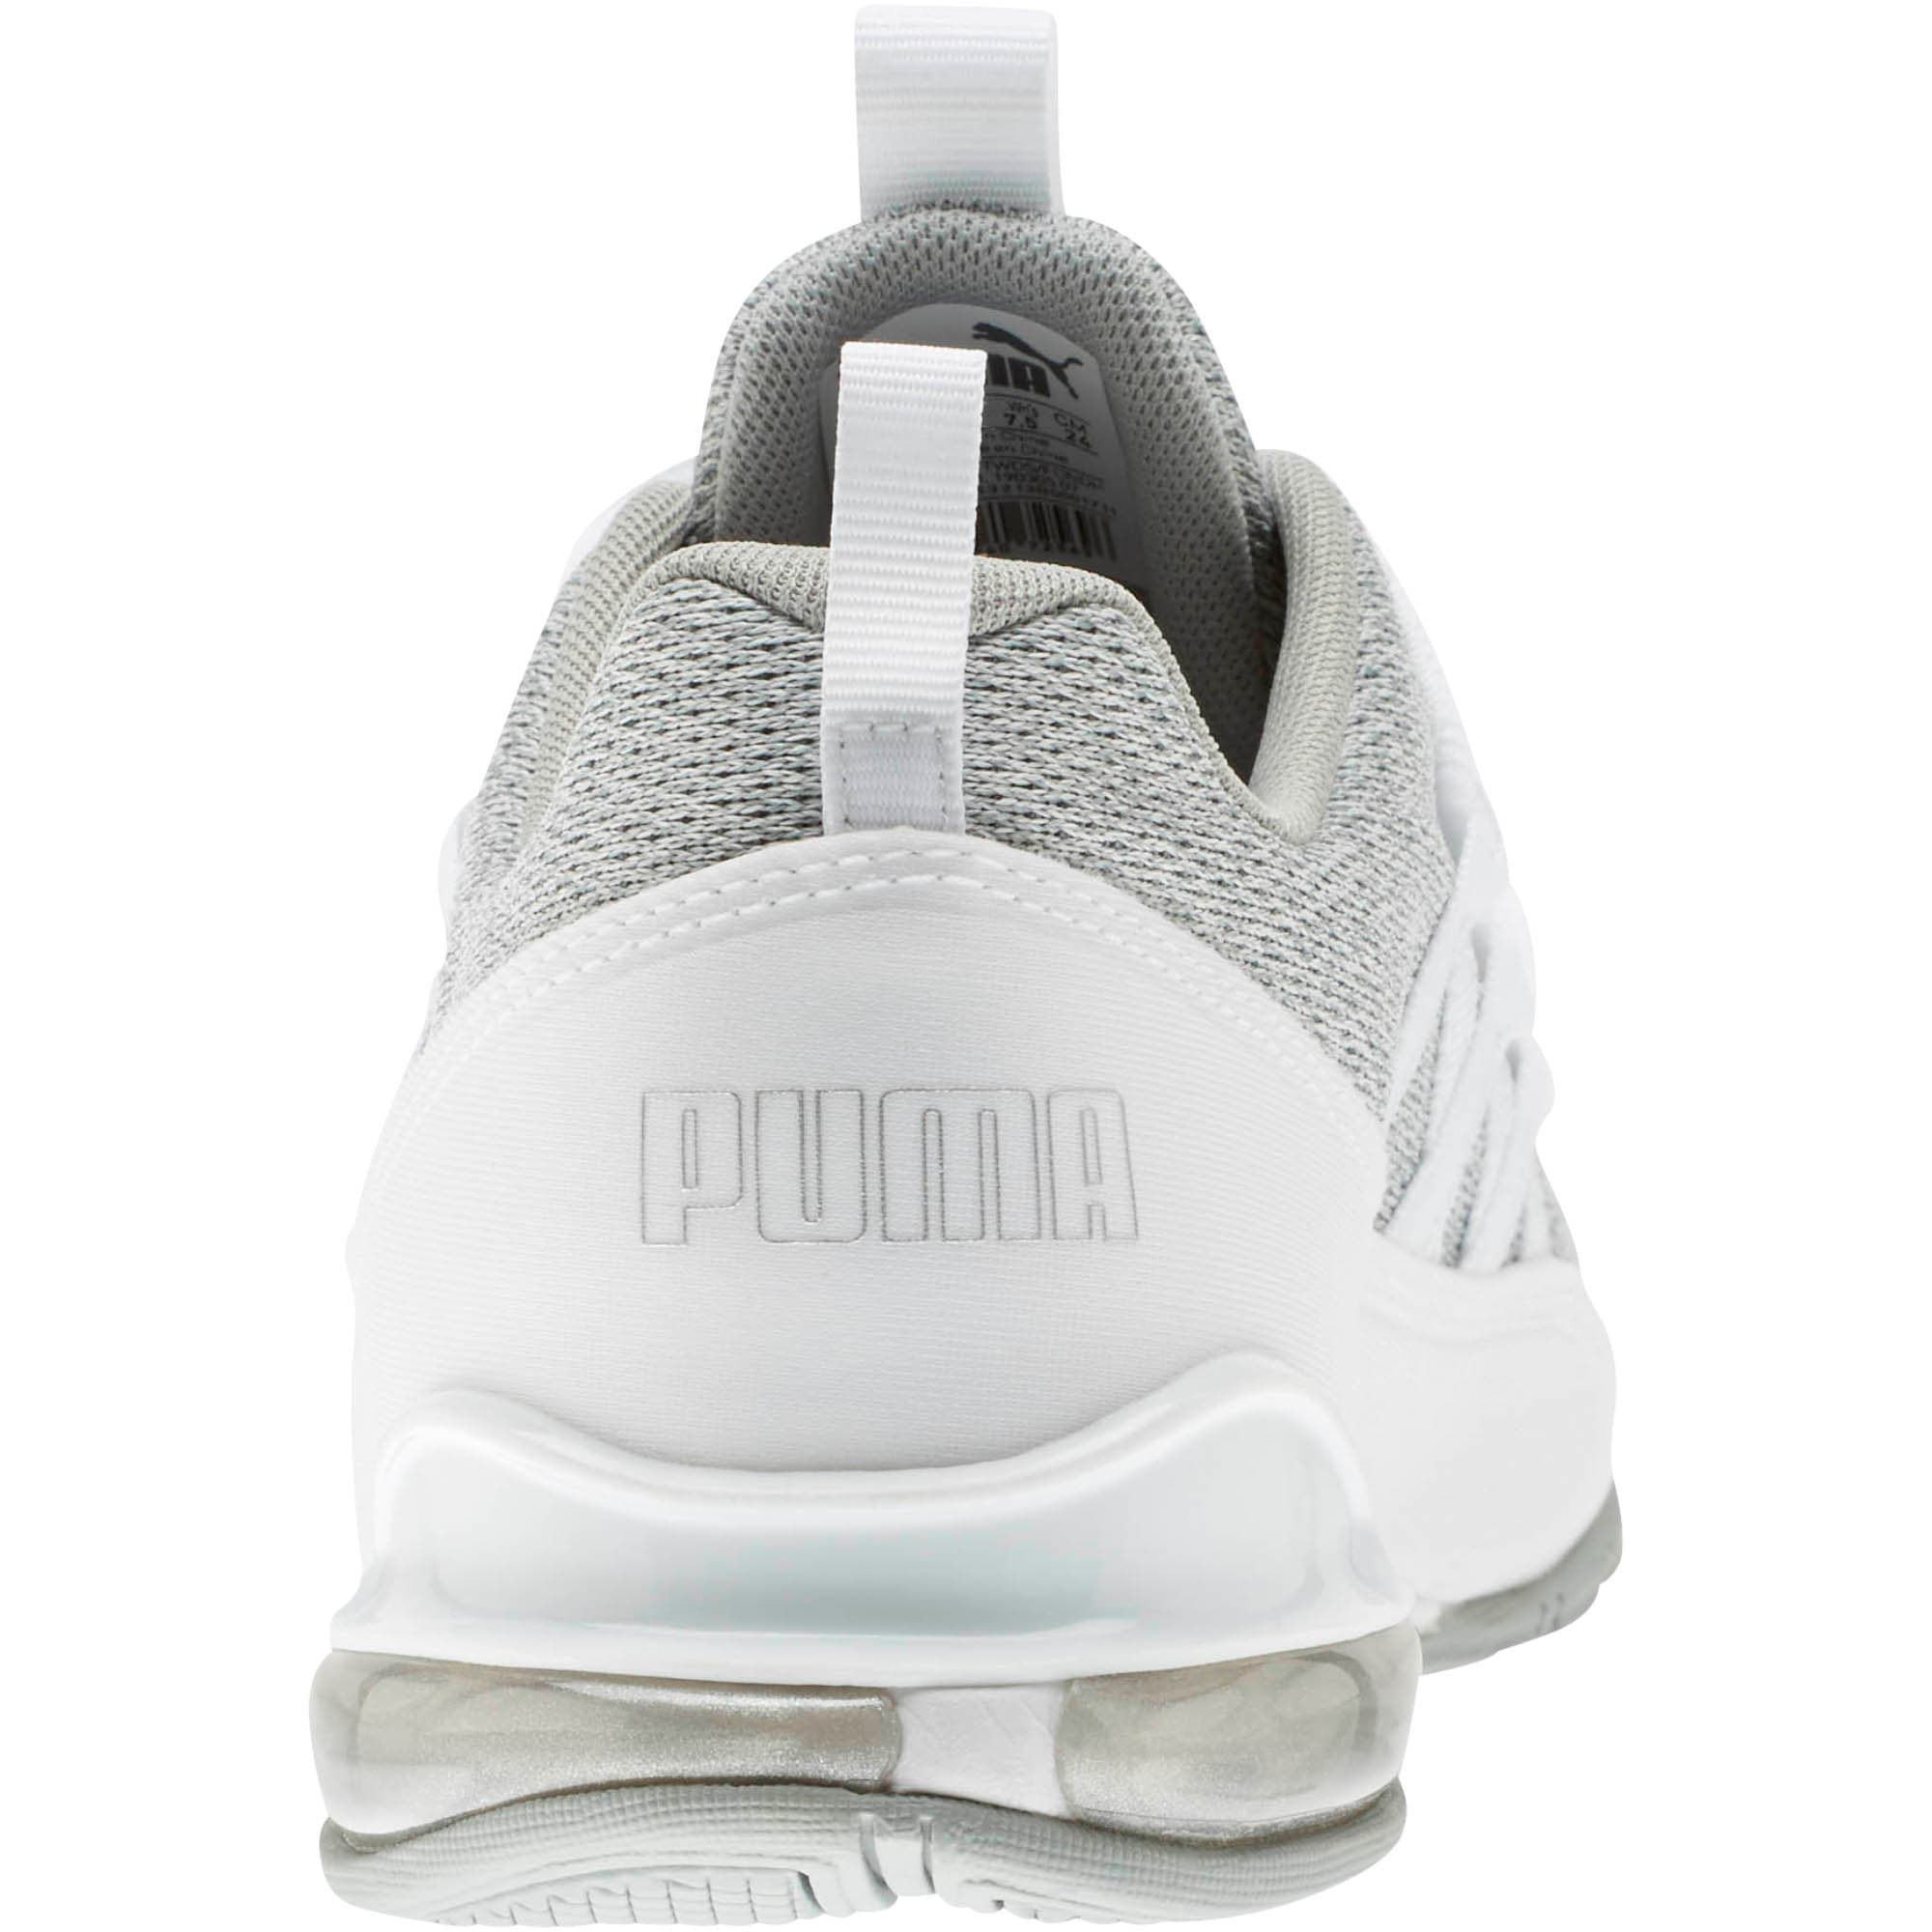 Thumbnail 3 of Riaze Prowl Women's Training Shoes, Puma White-Puma Silver, medium